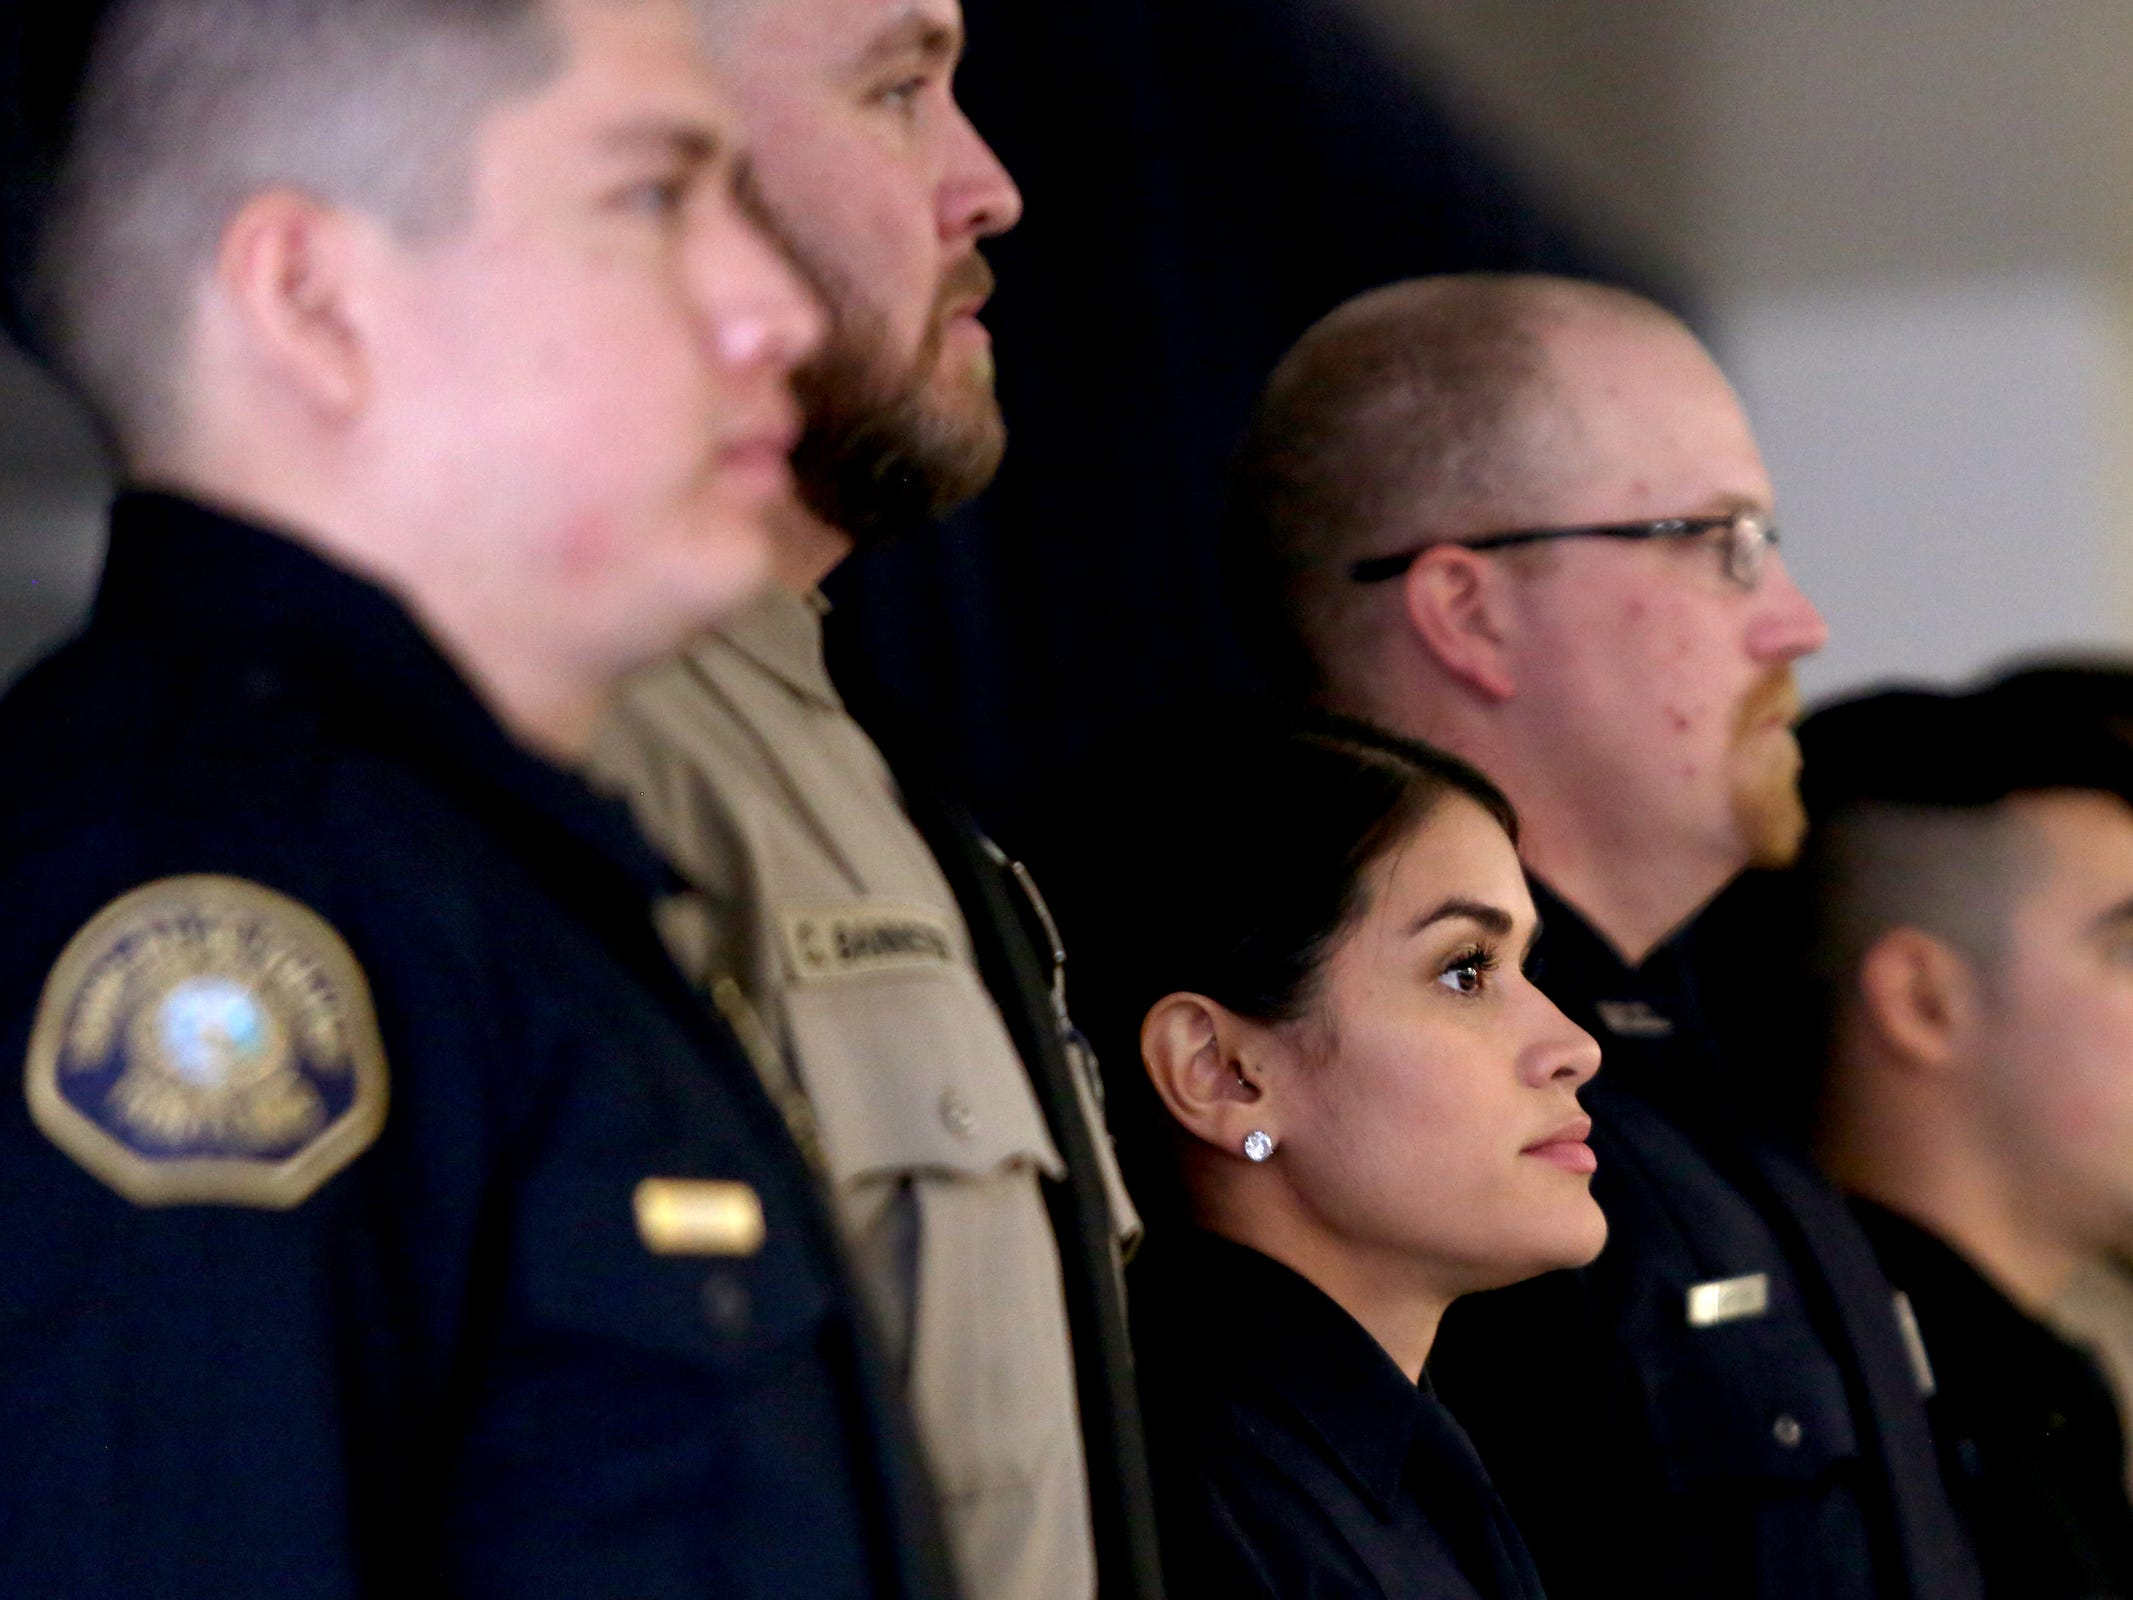 Gina Bell, a new Albany Police Officer, stands with other graduates during a Basic Police Class graduation ceremony at the Department of Public Safety Standards and Training in Salem on March 15, 2019.